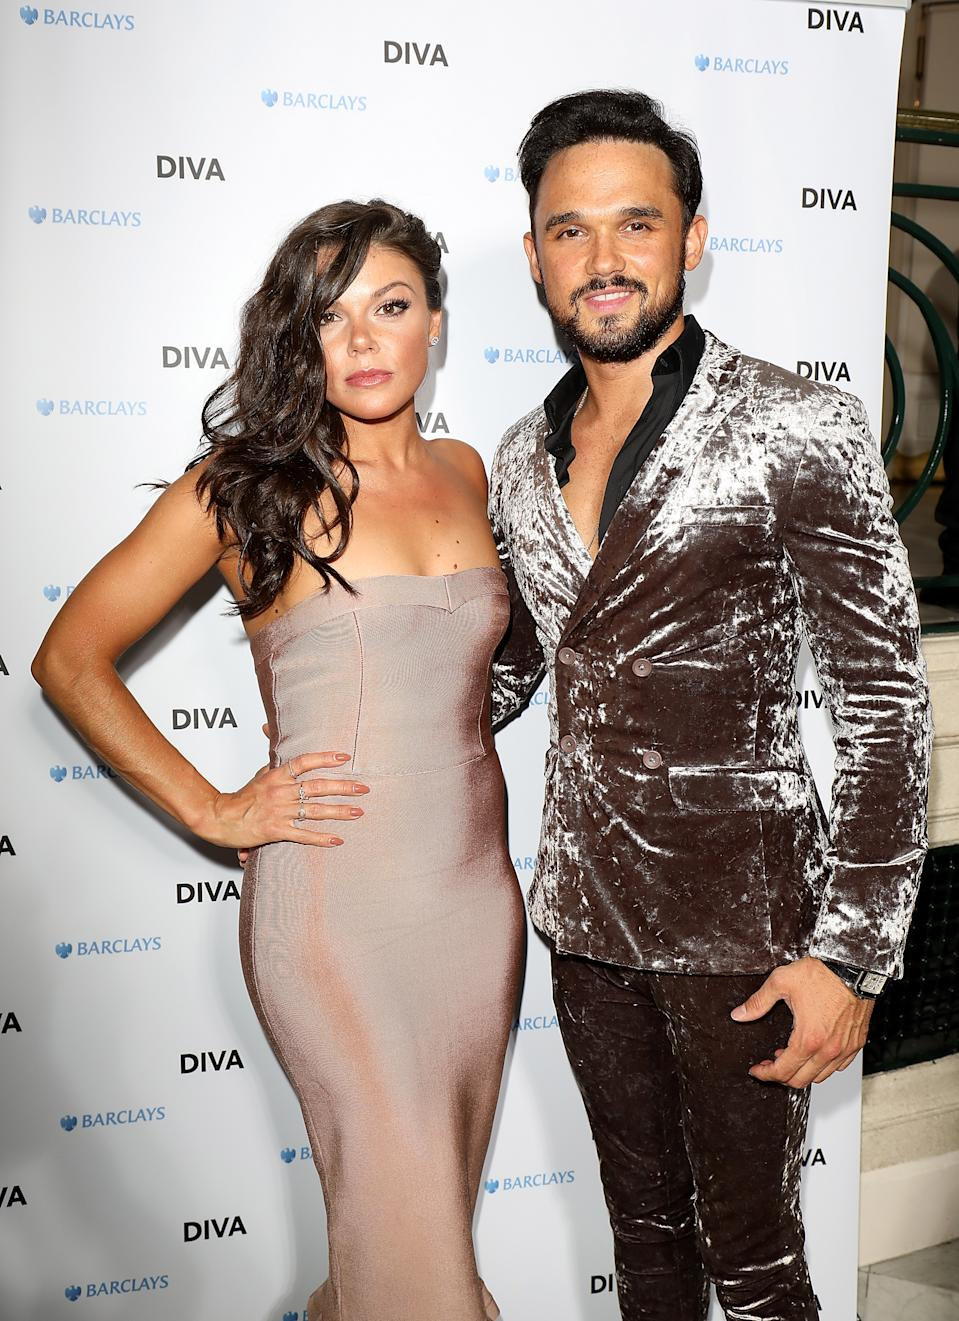 Faye Brookes and Gareth Gates attend the 2018 Diva Awards at The Waldorf Hilton Hotel on June 8, 2018 in London, England.  (Photo by Tim P. Whitby/Getty Images for Diva Magazine)